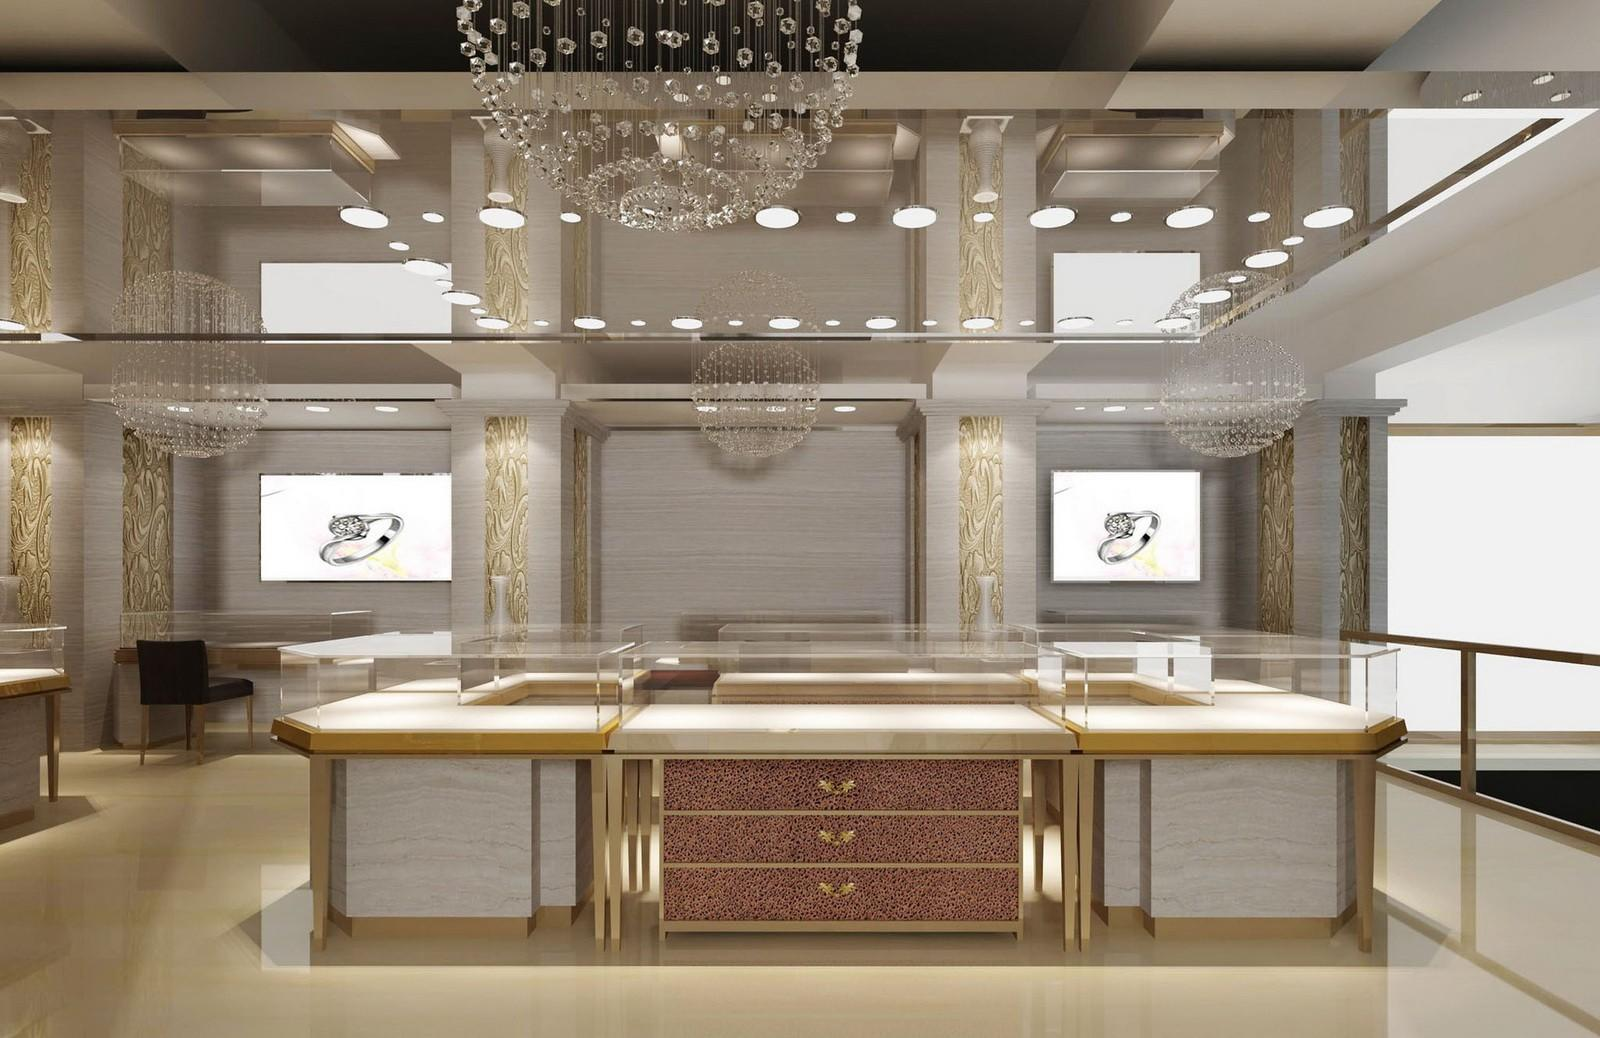 jewellery shop showcase design latest for store OUYEE-1